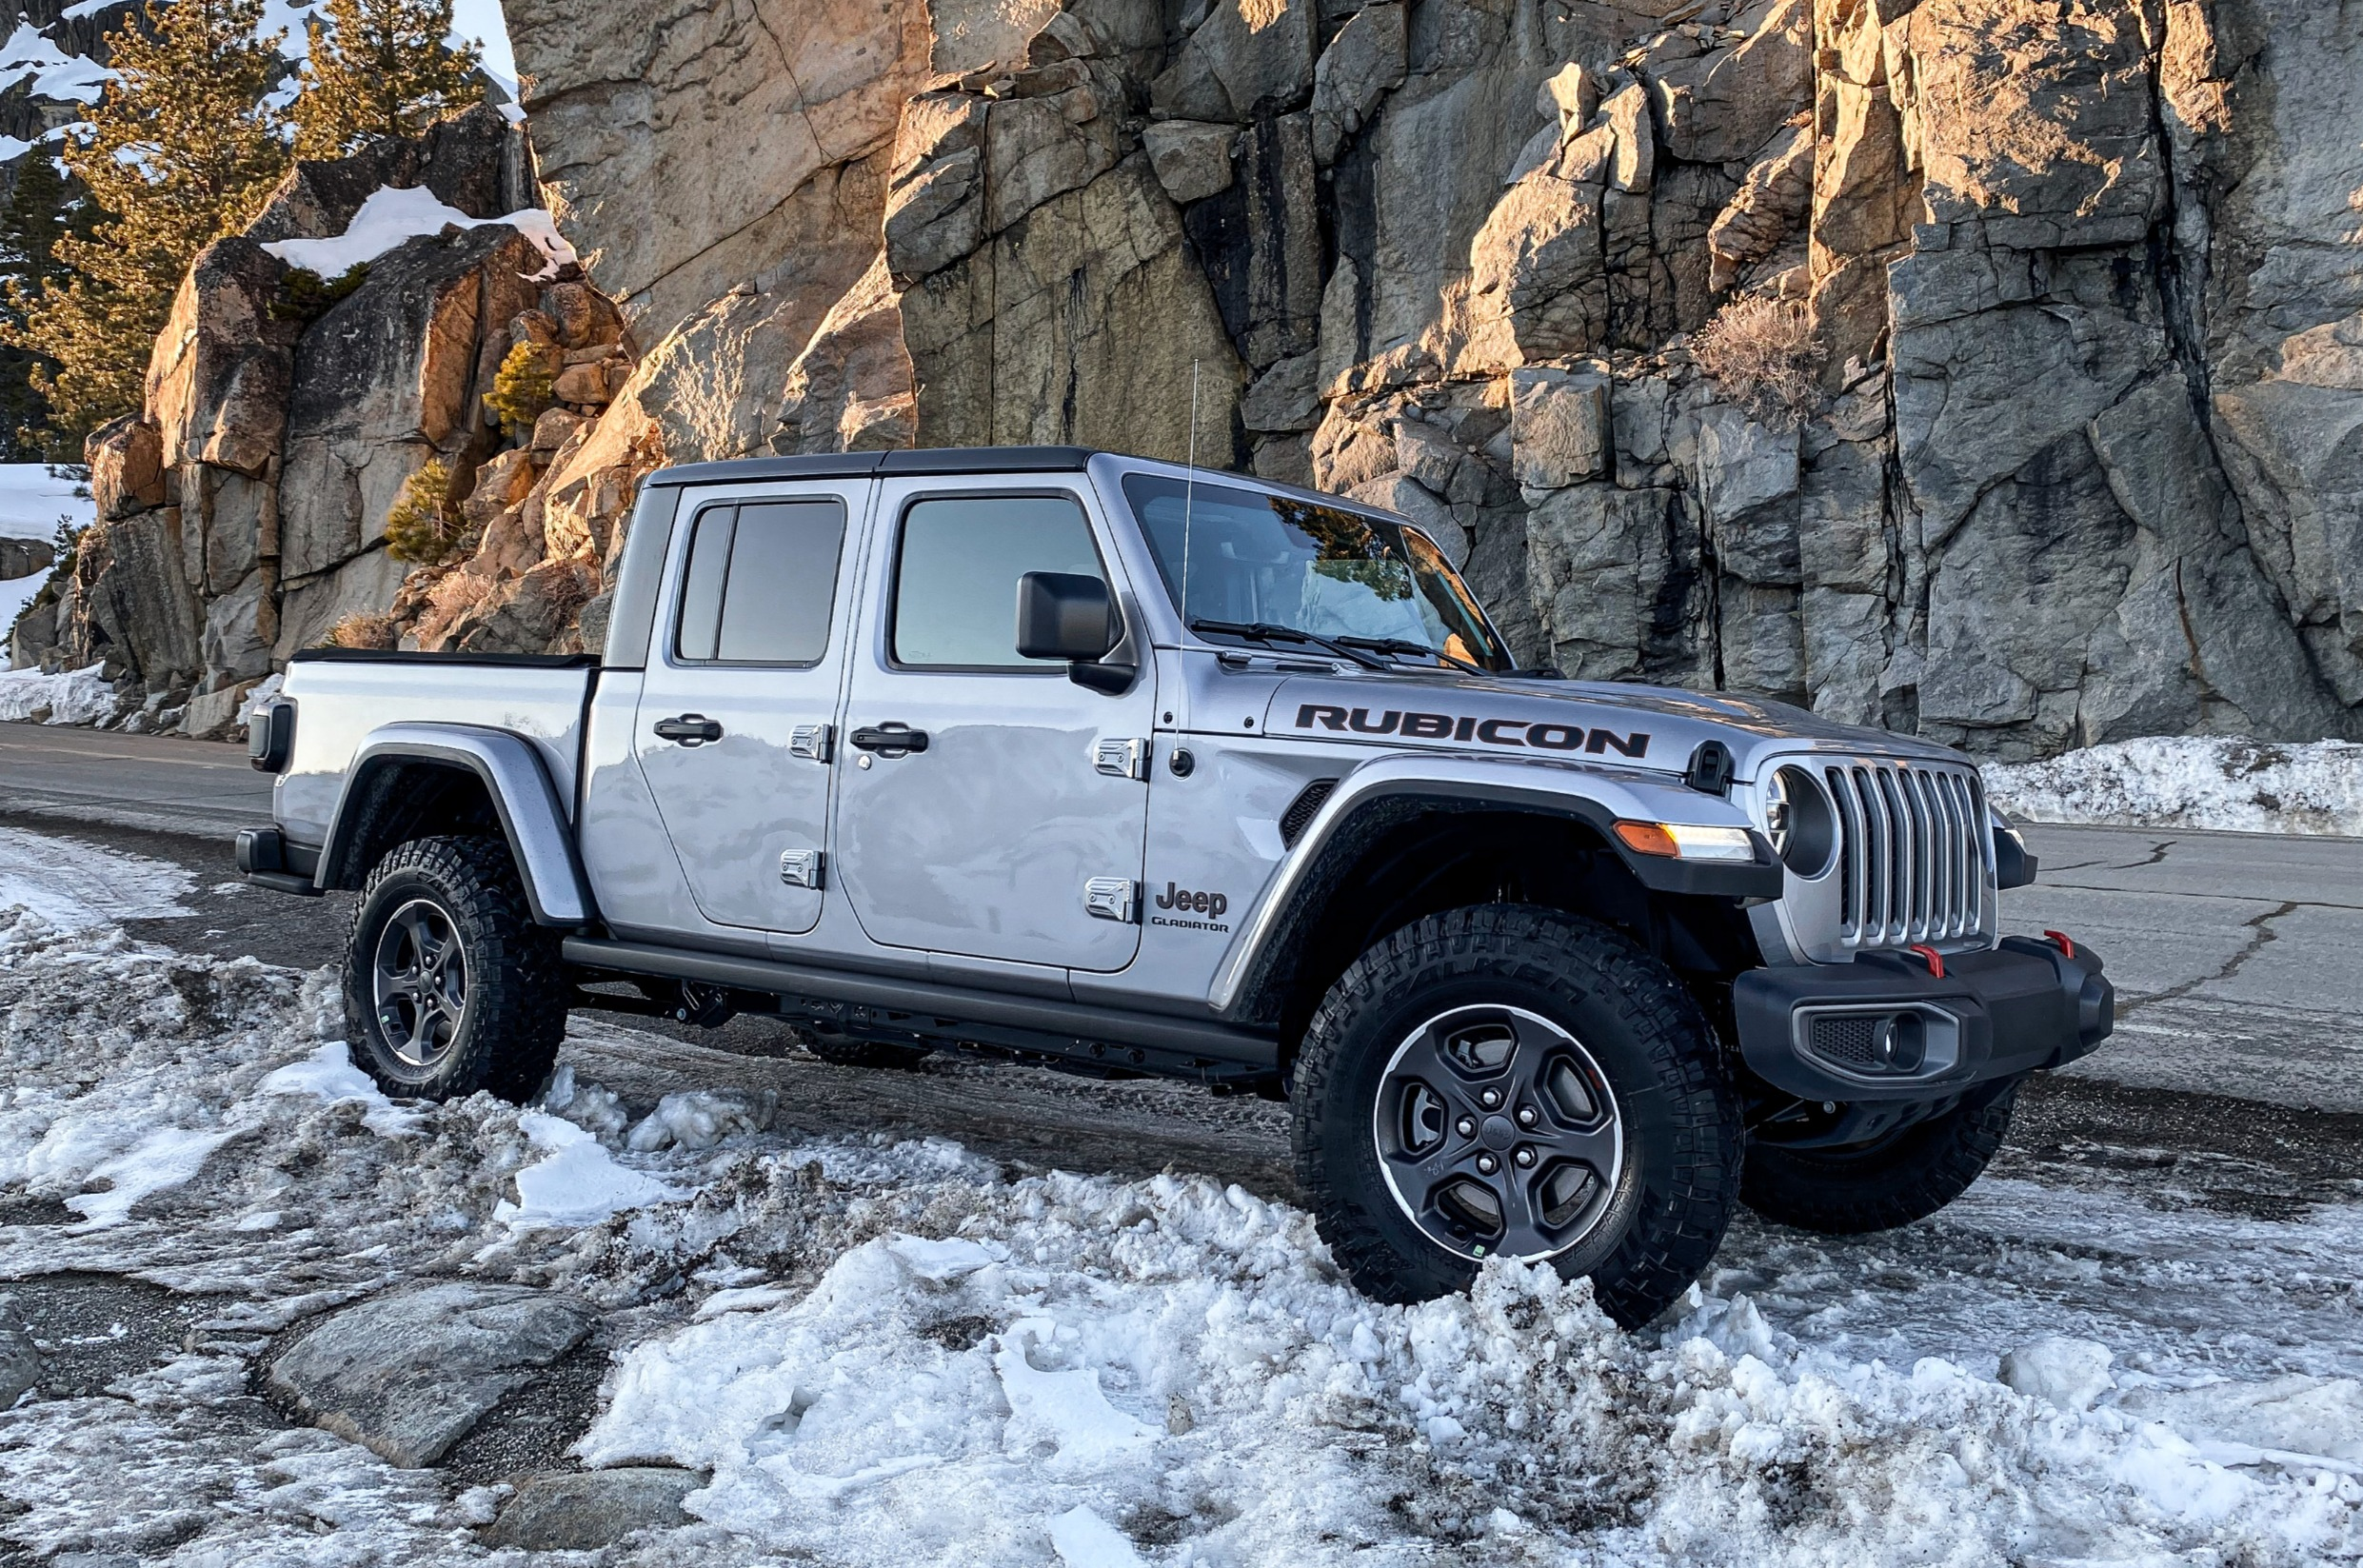 Jeep Gladiator Rubicon 4x4